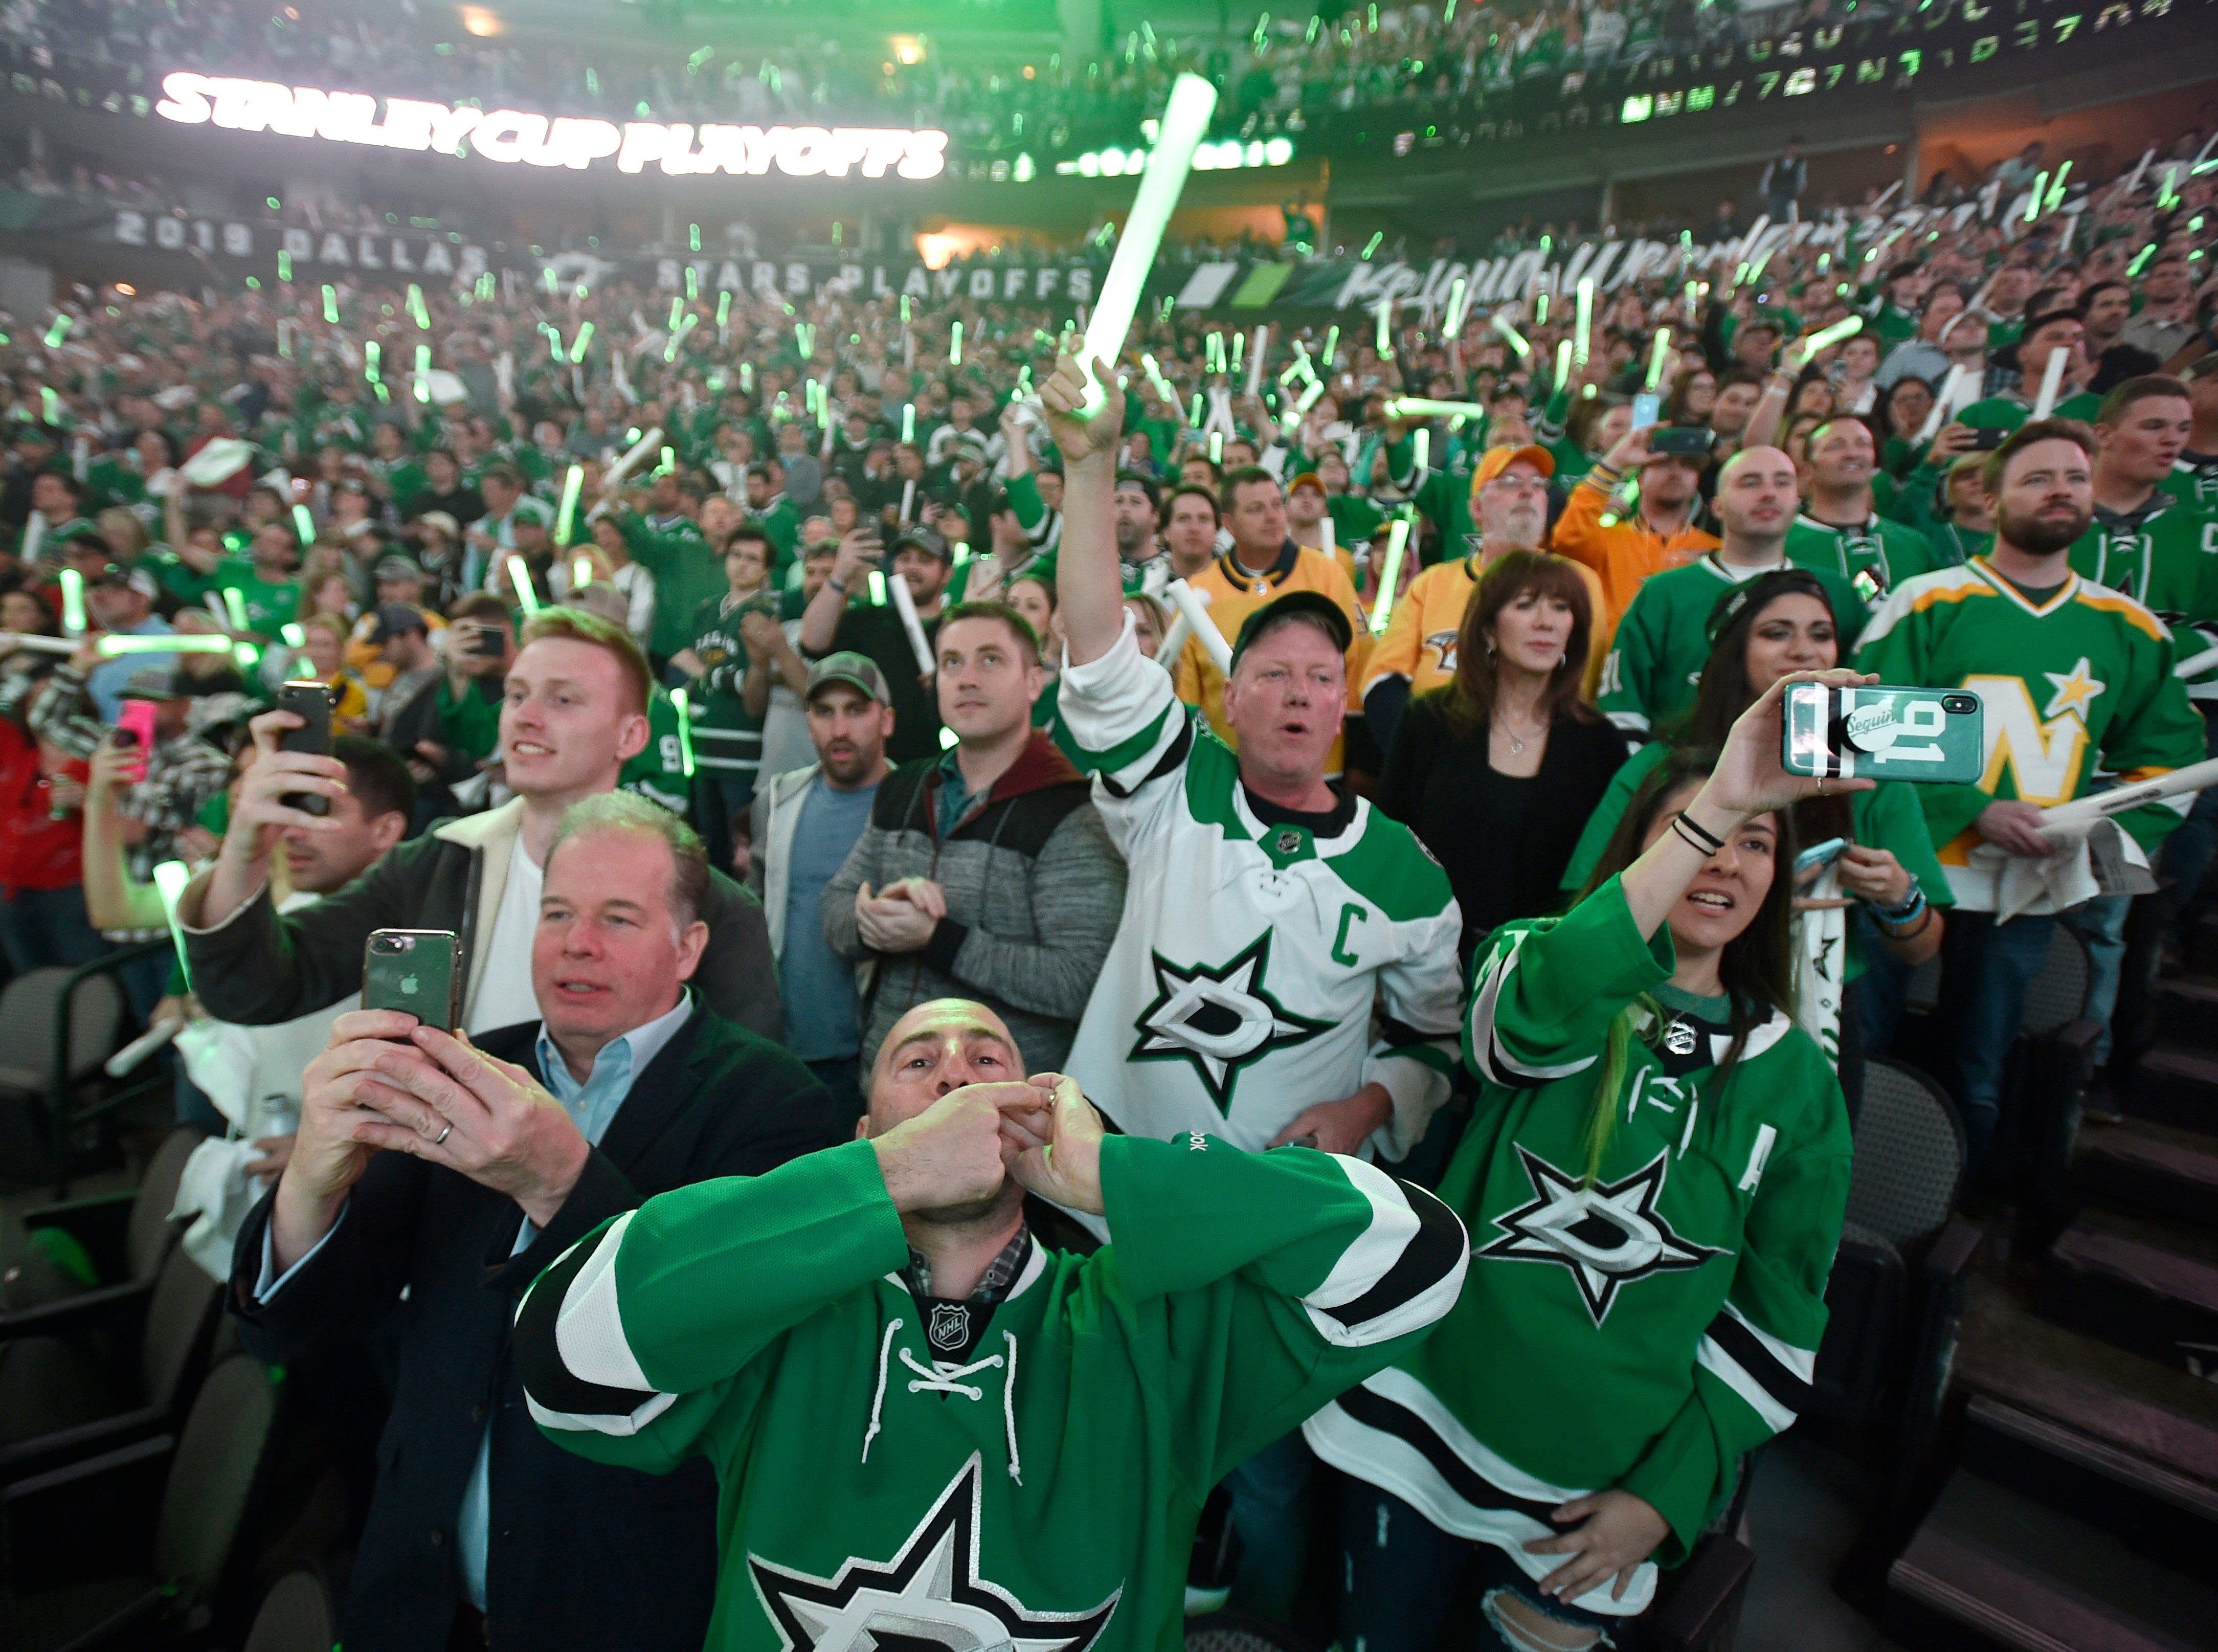 Stars fans cheer at the start of the divisional semifinal game  against the Predators at the American Airlines Center in Dallas, Texas., Monday, April 15, 2019.